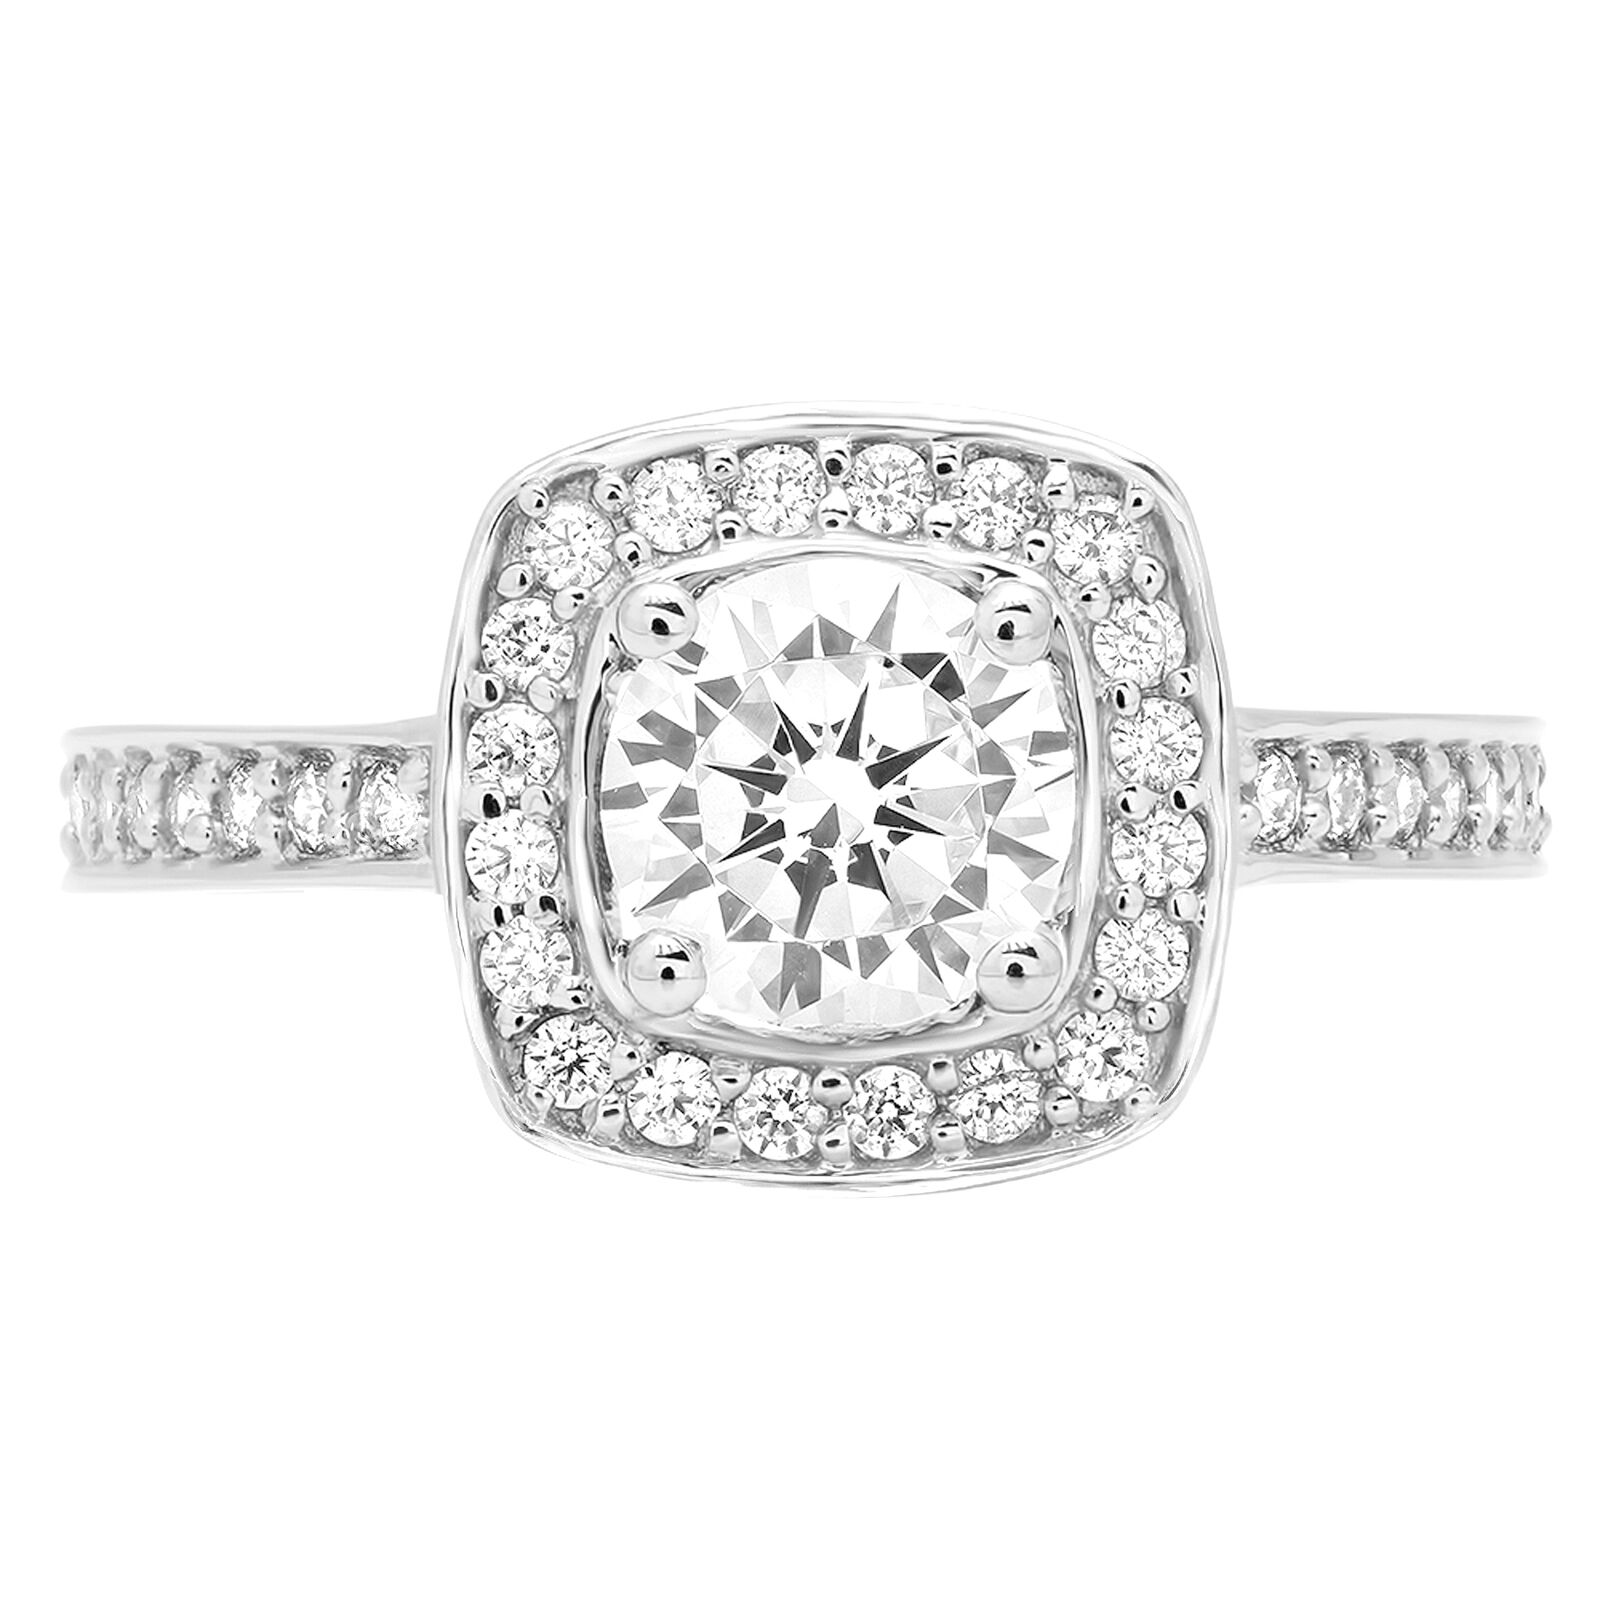 1.36ct Round Cut Solitaire Halo Engagement Wedding Promise Ring 14k White gold